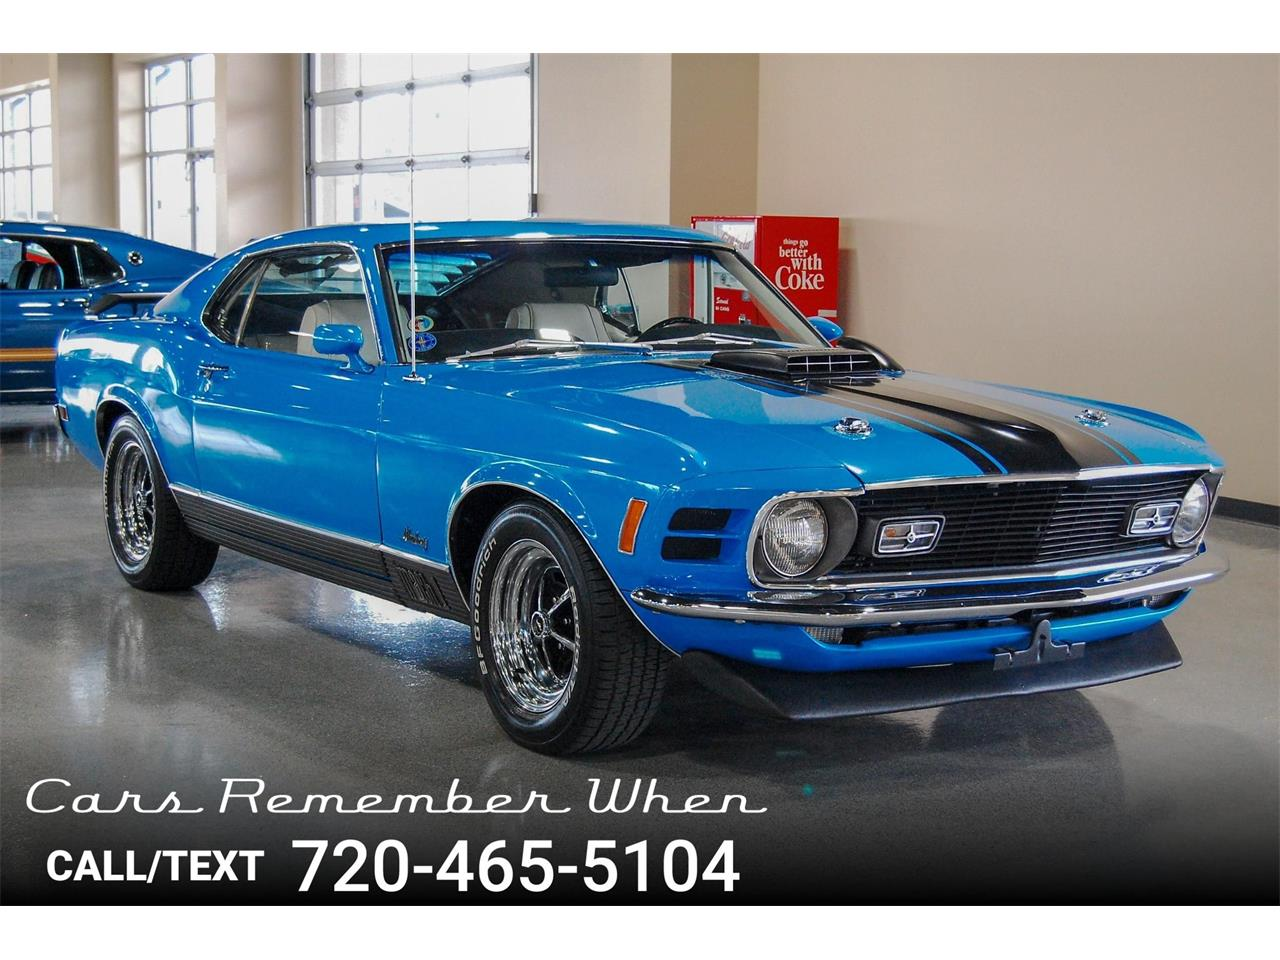 Large picture of 70 mustang oe92